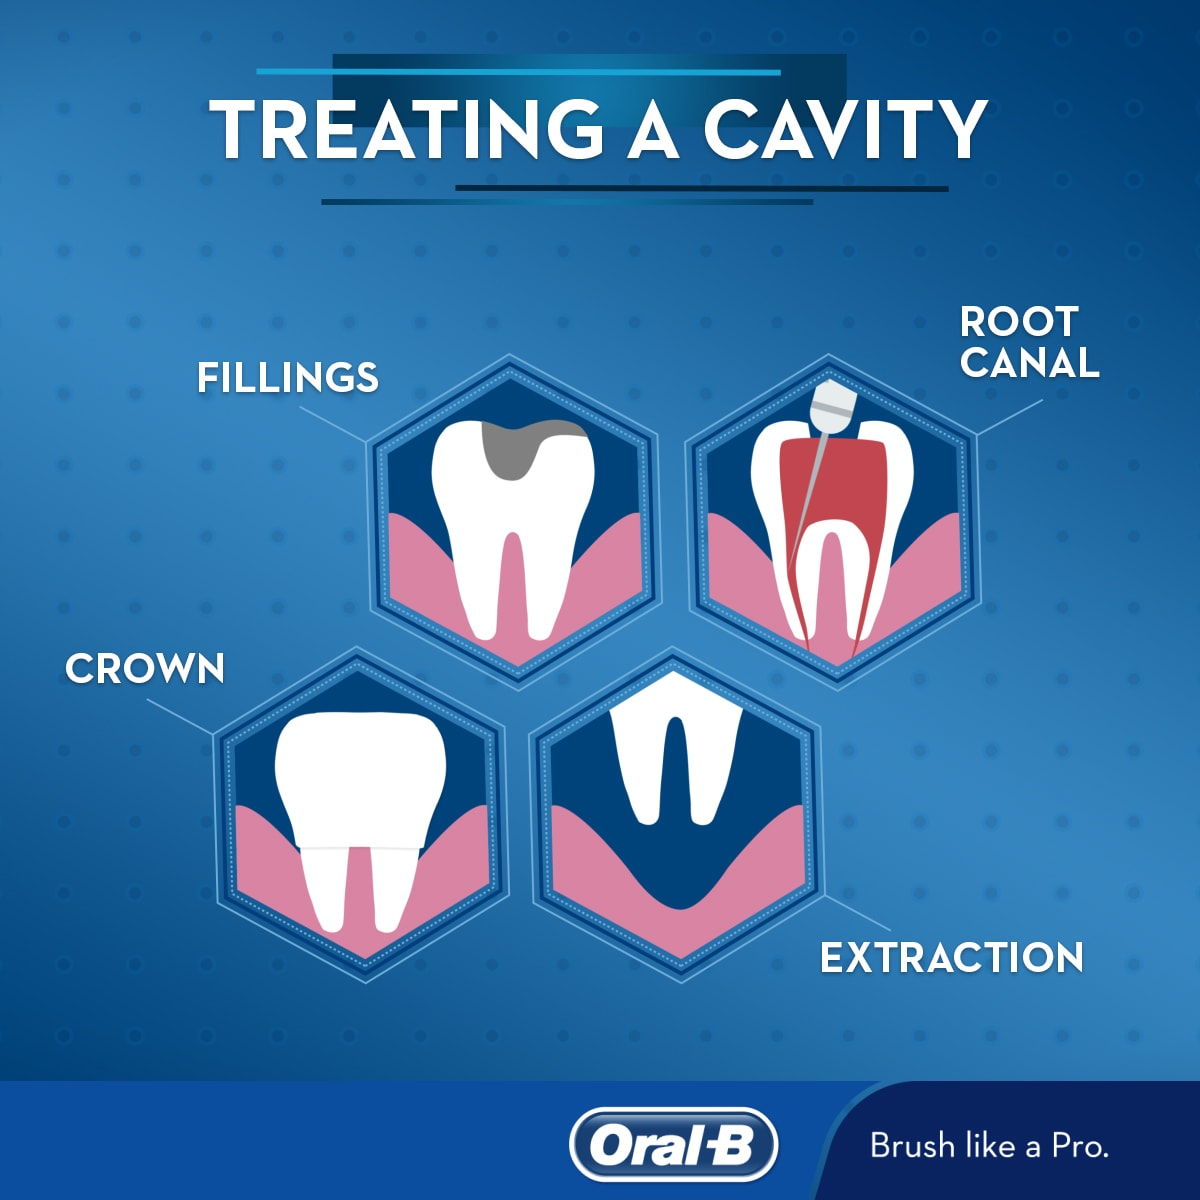 Treating a cavity